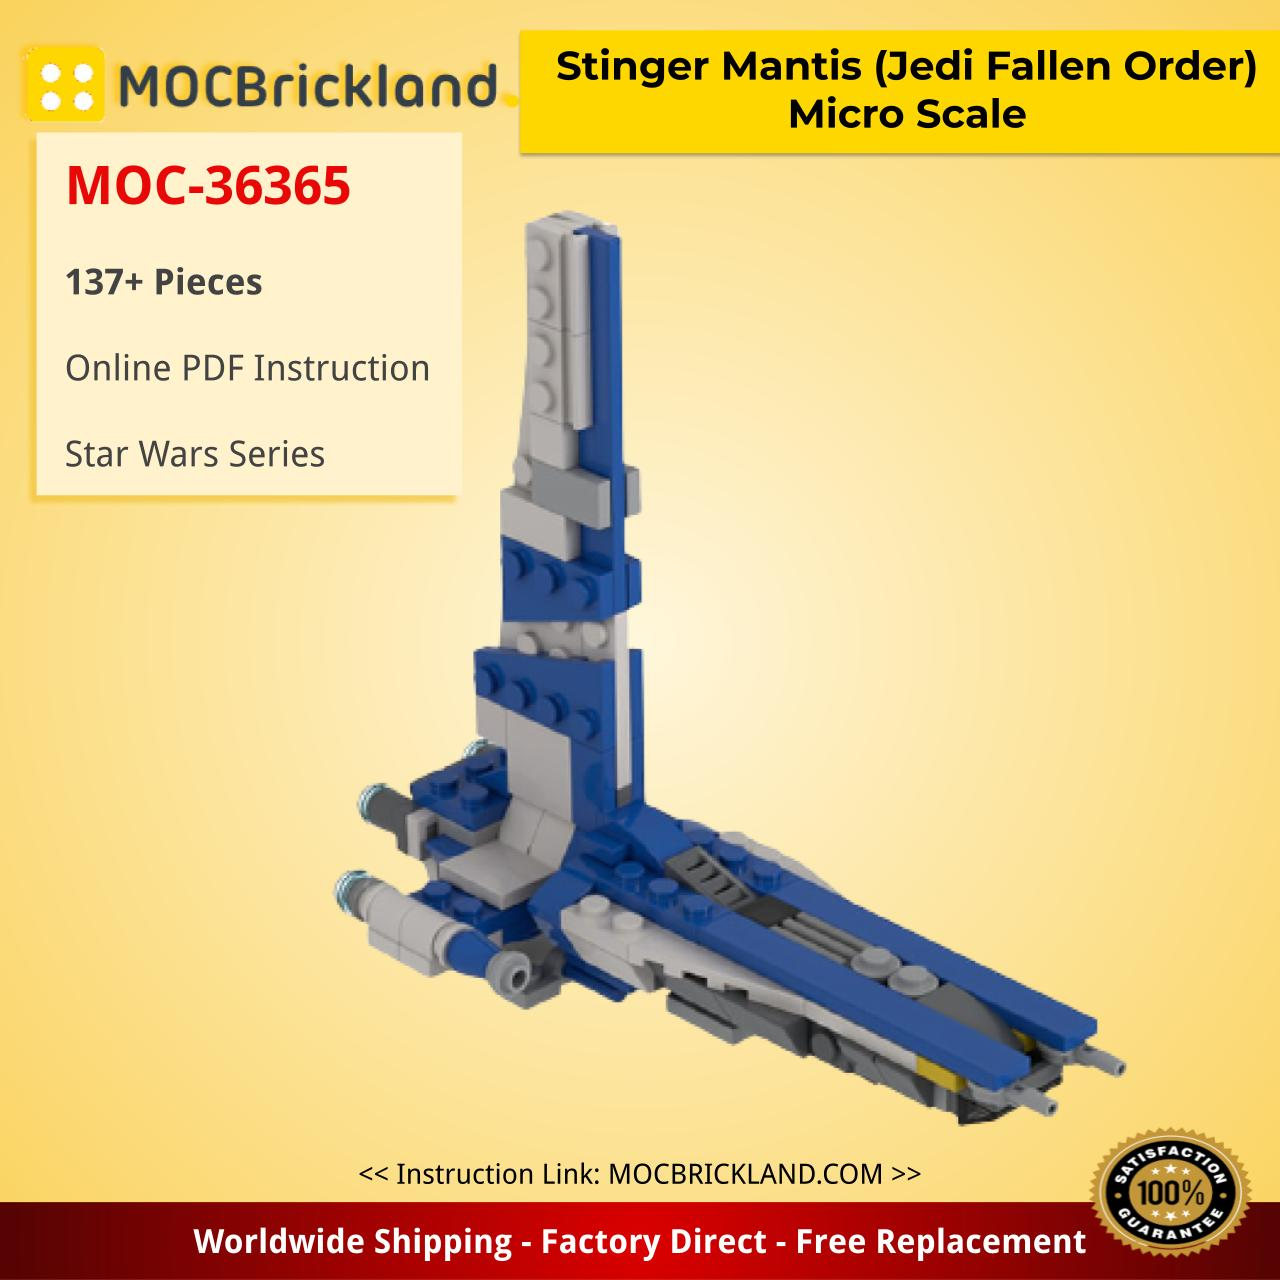 Stinger Mantis (Jedi Fallen Order) Micro Scale Star Wars MOC-36365 by 2bricksofficial WITH 137 PIECES